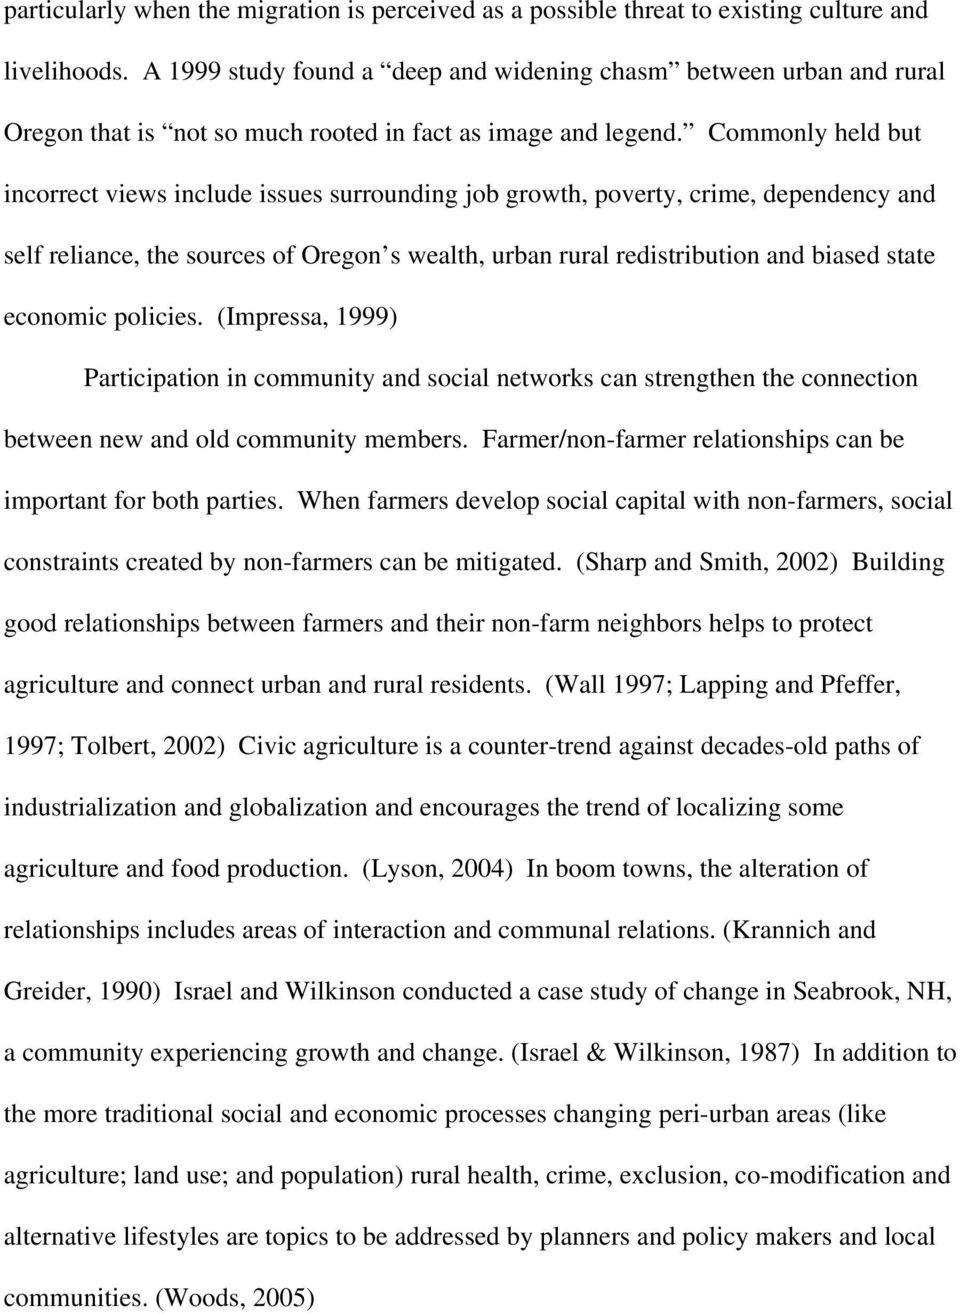 Commonly held but incorrect views include issues surrounding job growth, poverty, crime, dependency and self reliance, the sources of Oregon s wealth, urban rural redistribution and biased state